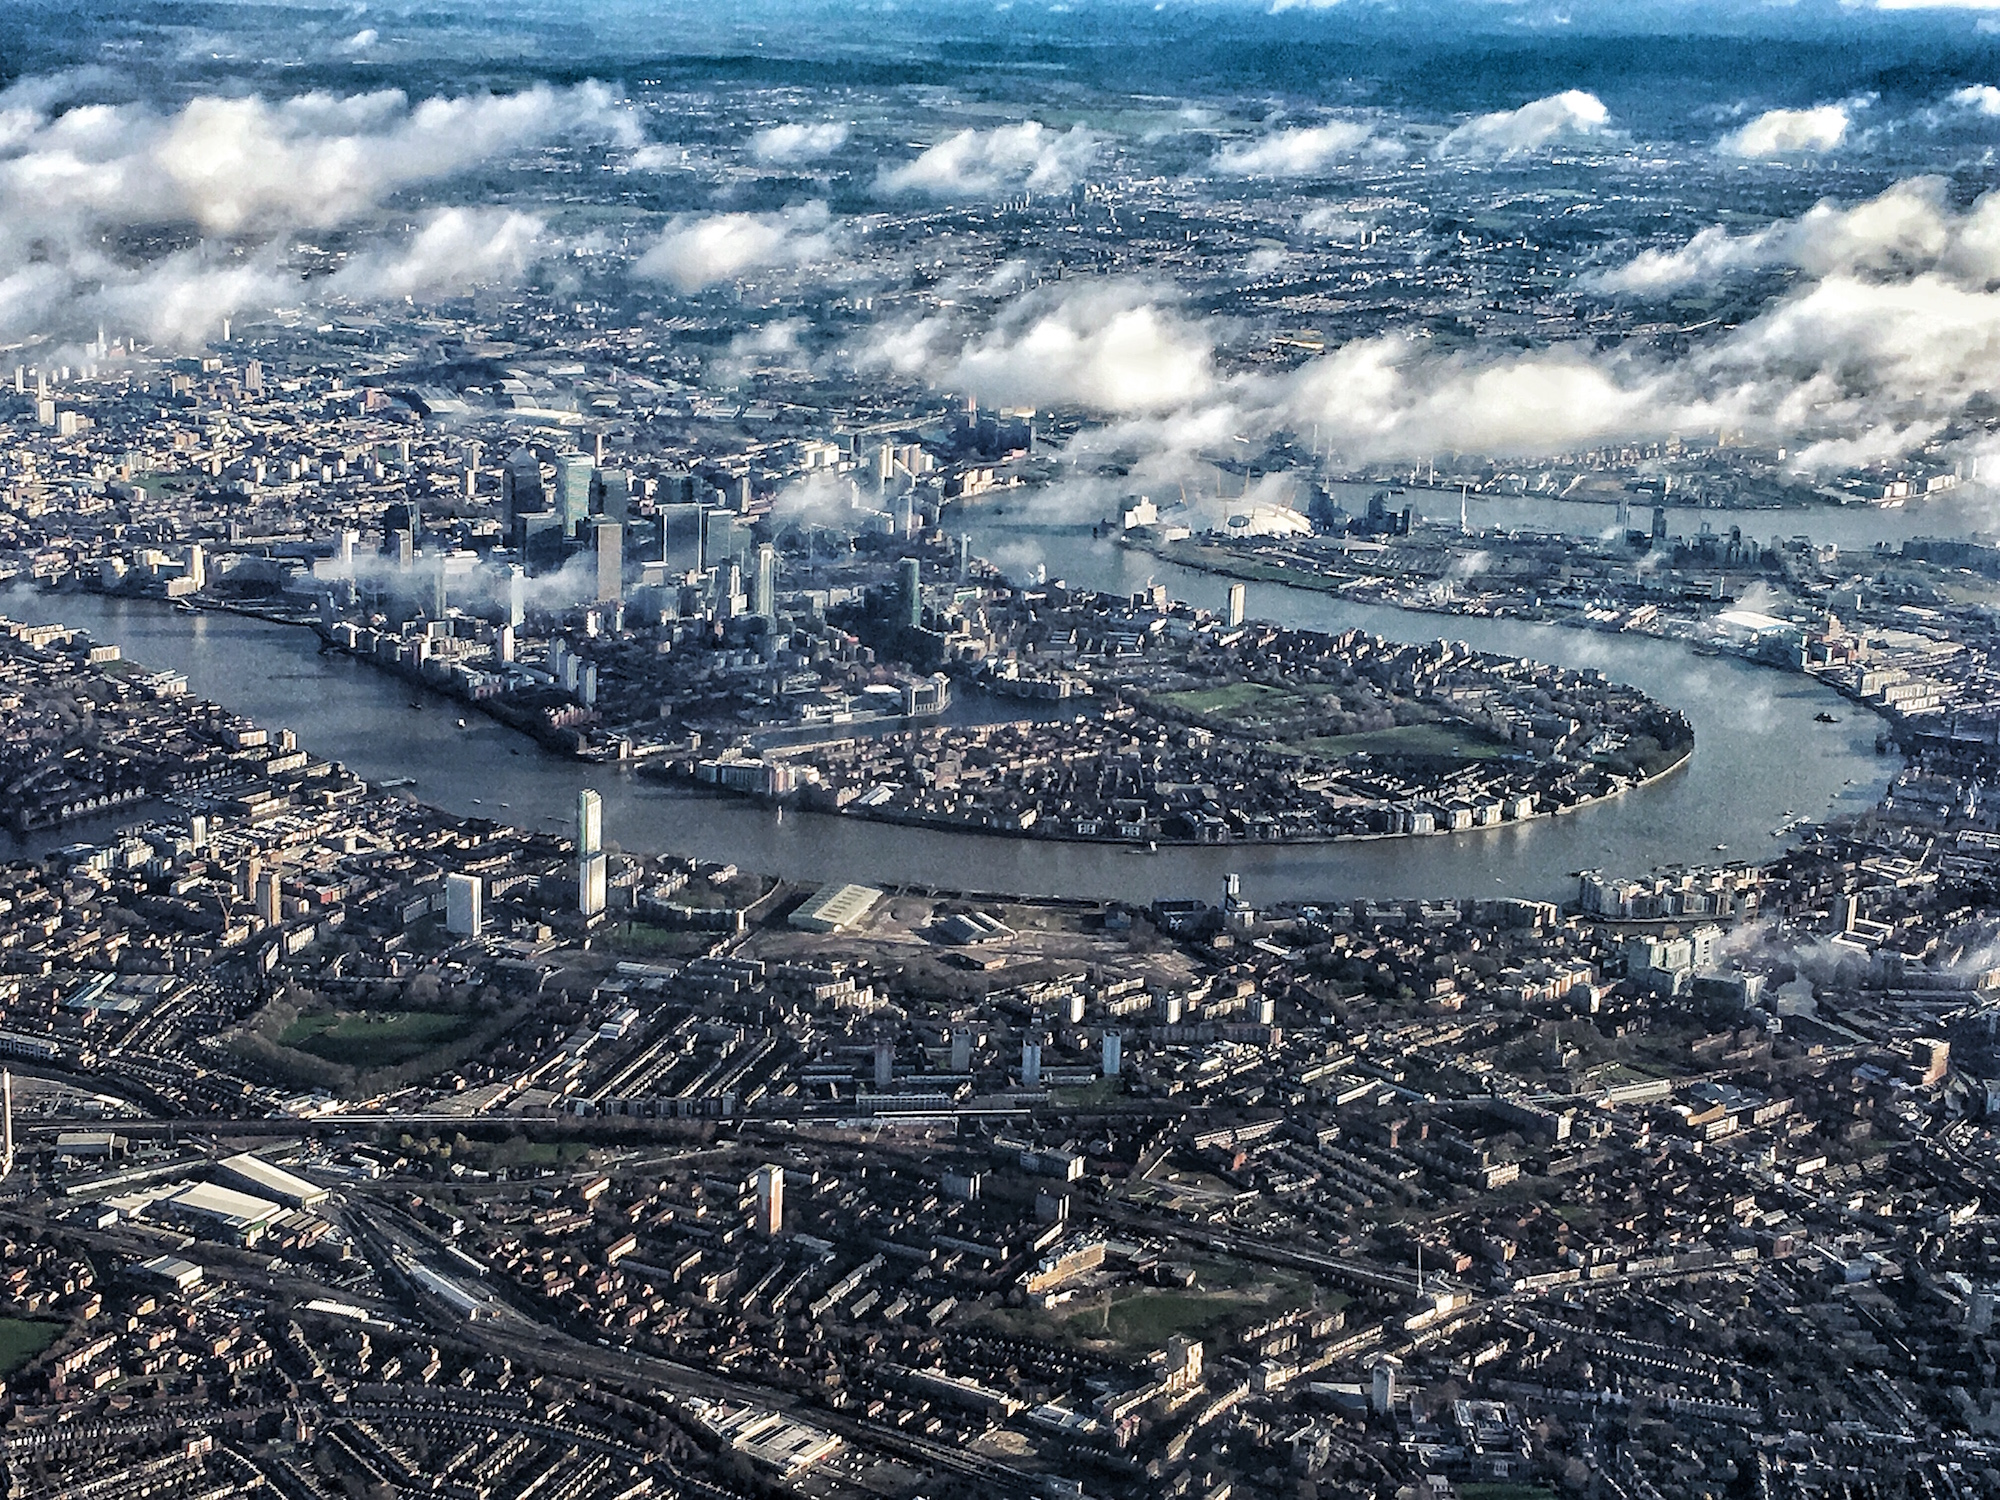 Circling London on final descent into Heathrow. Wow.